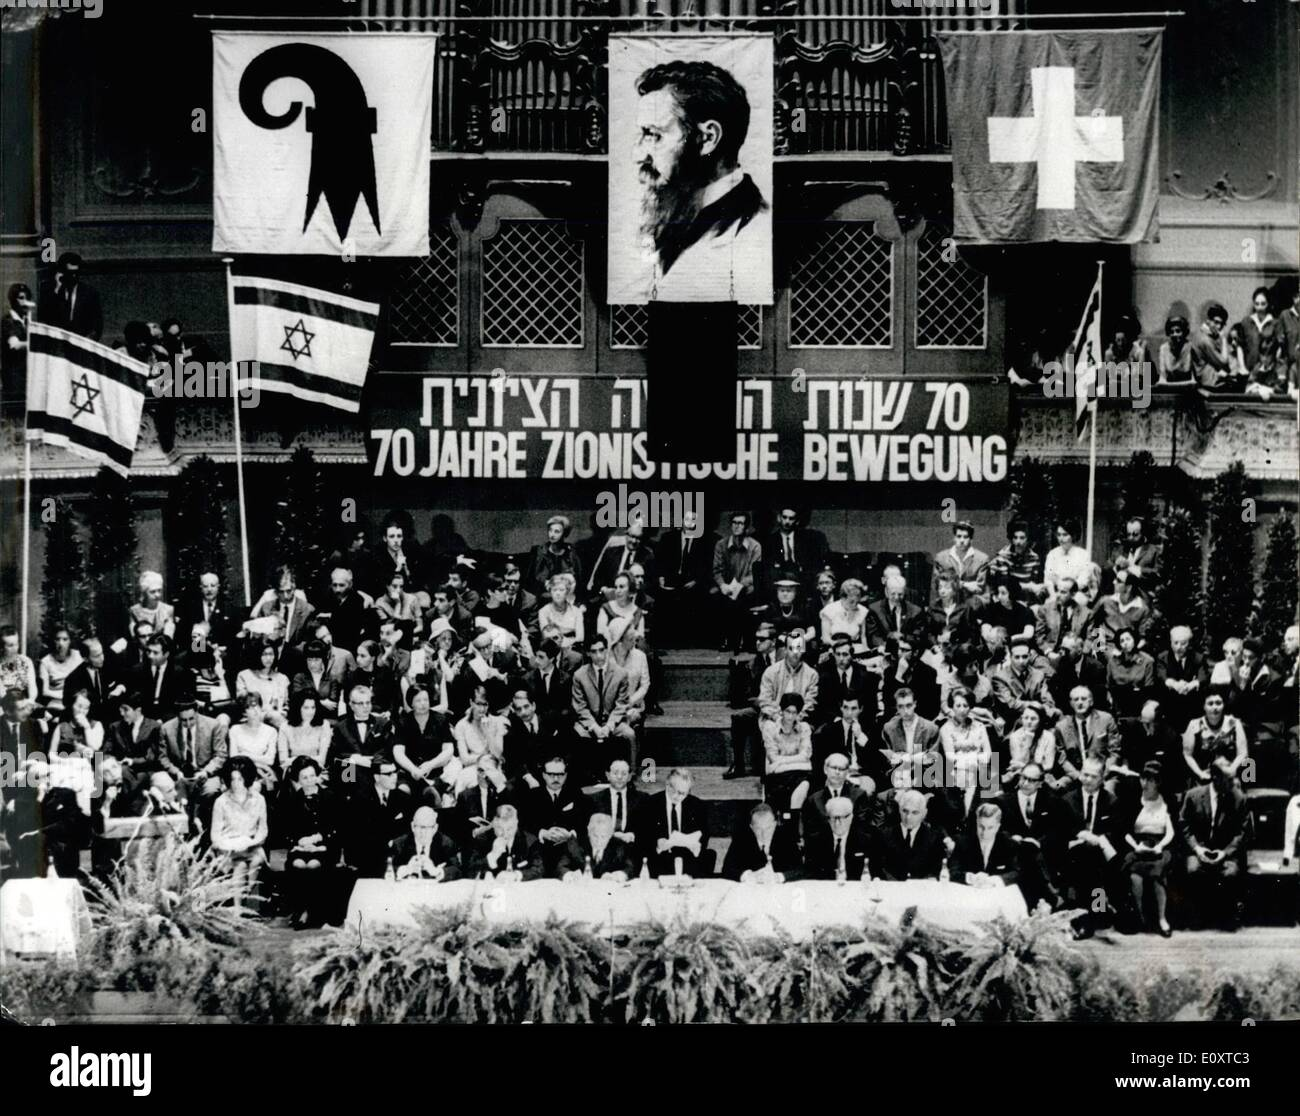 Sep. 09, 1967 - 70th Anniversary of first Worldwide Zionist Congress: Many prominent personalities from all over the world met at Basle, Switzerland, to celebrate the 70th. Anniversary of first worldwide Zionist Congress. The meeting was held in the same room as in 1897. Photo shows General view during the Zionist Congress in Basle, Switzerland. - Stock Image